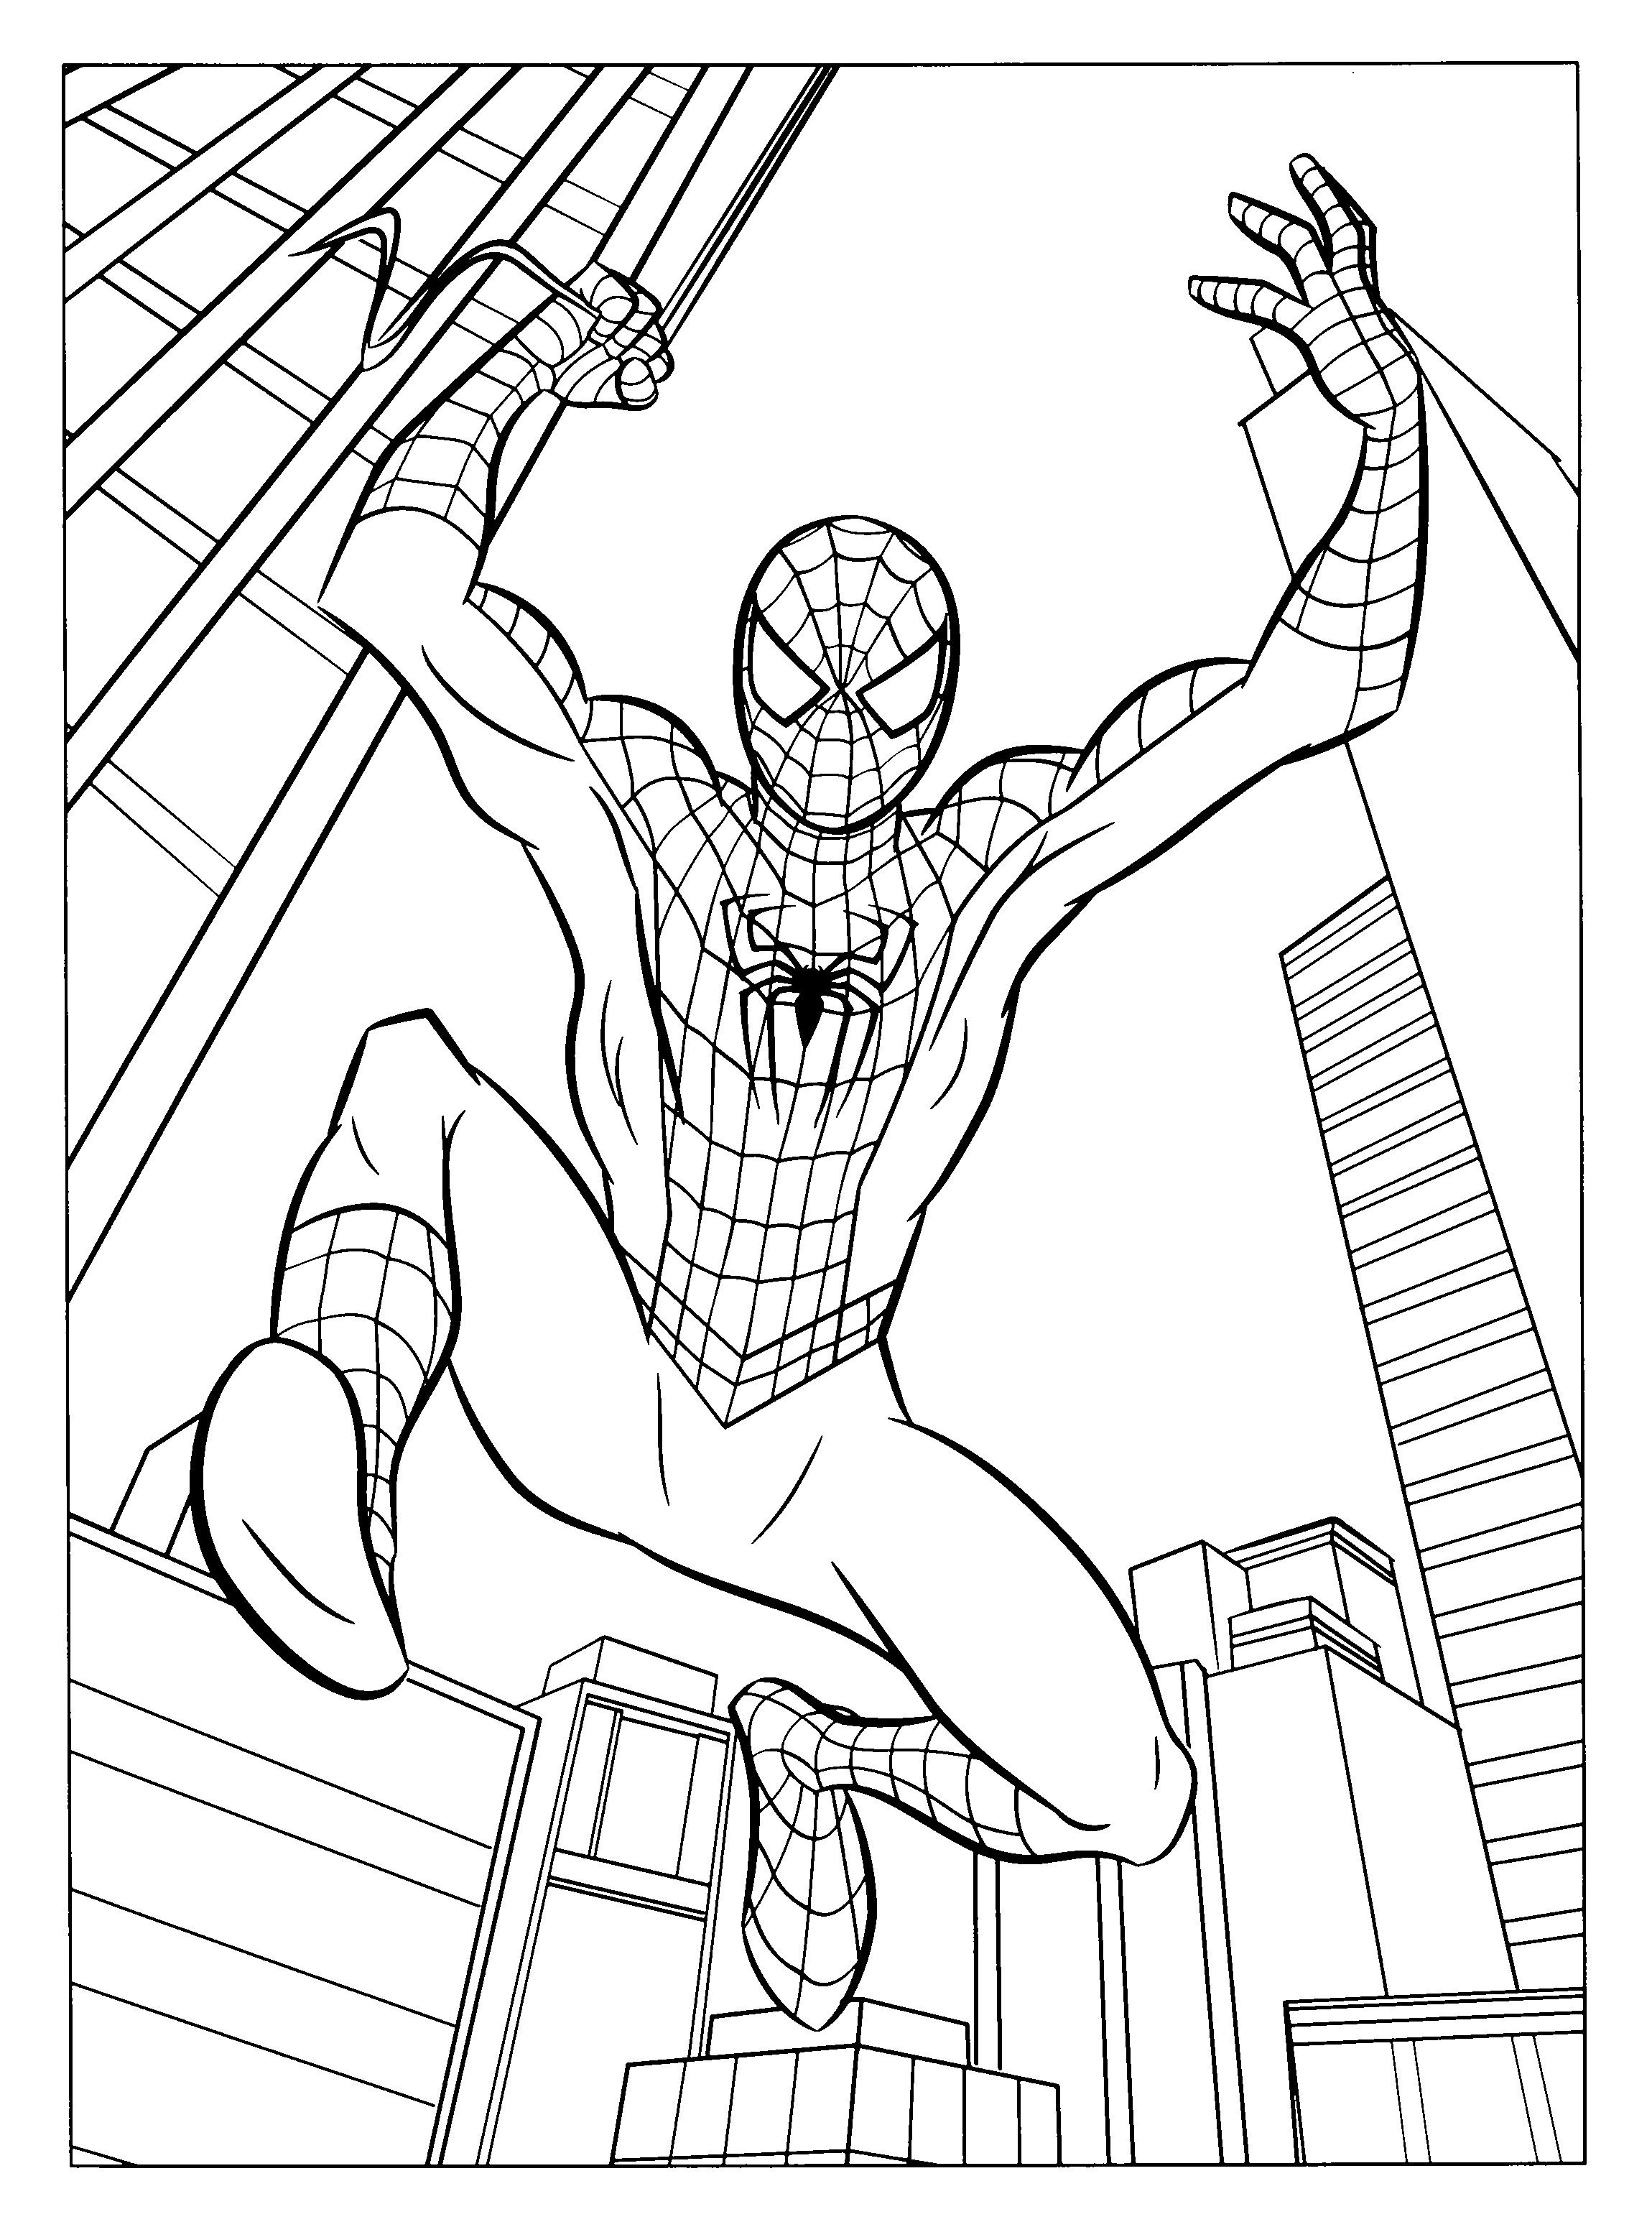 coloring pages kids boys - photo#33